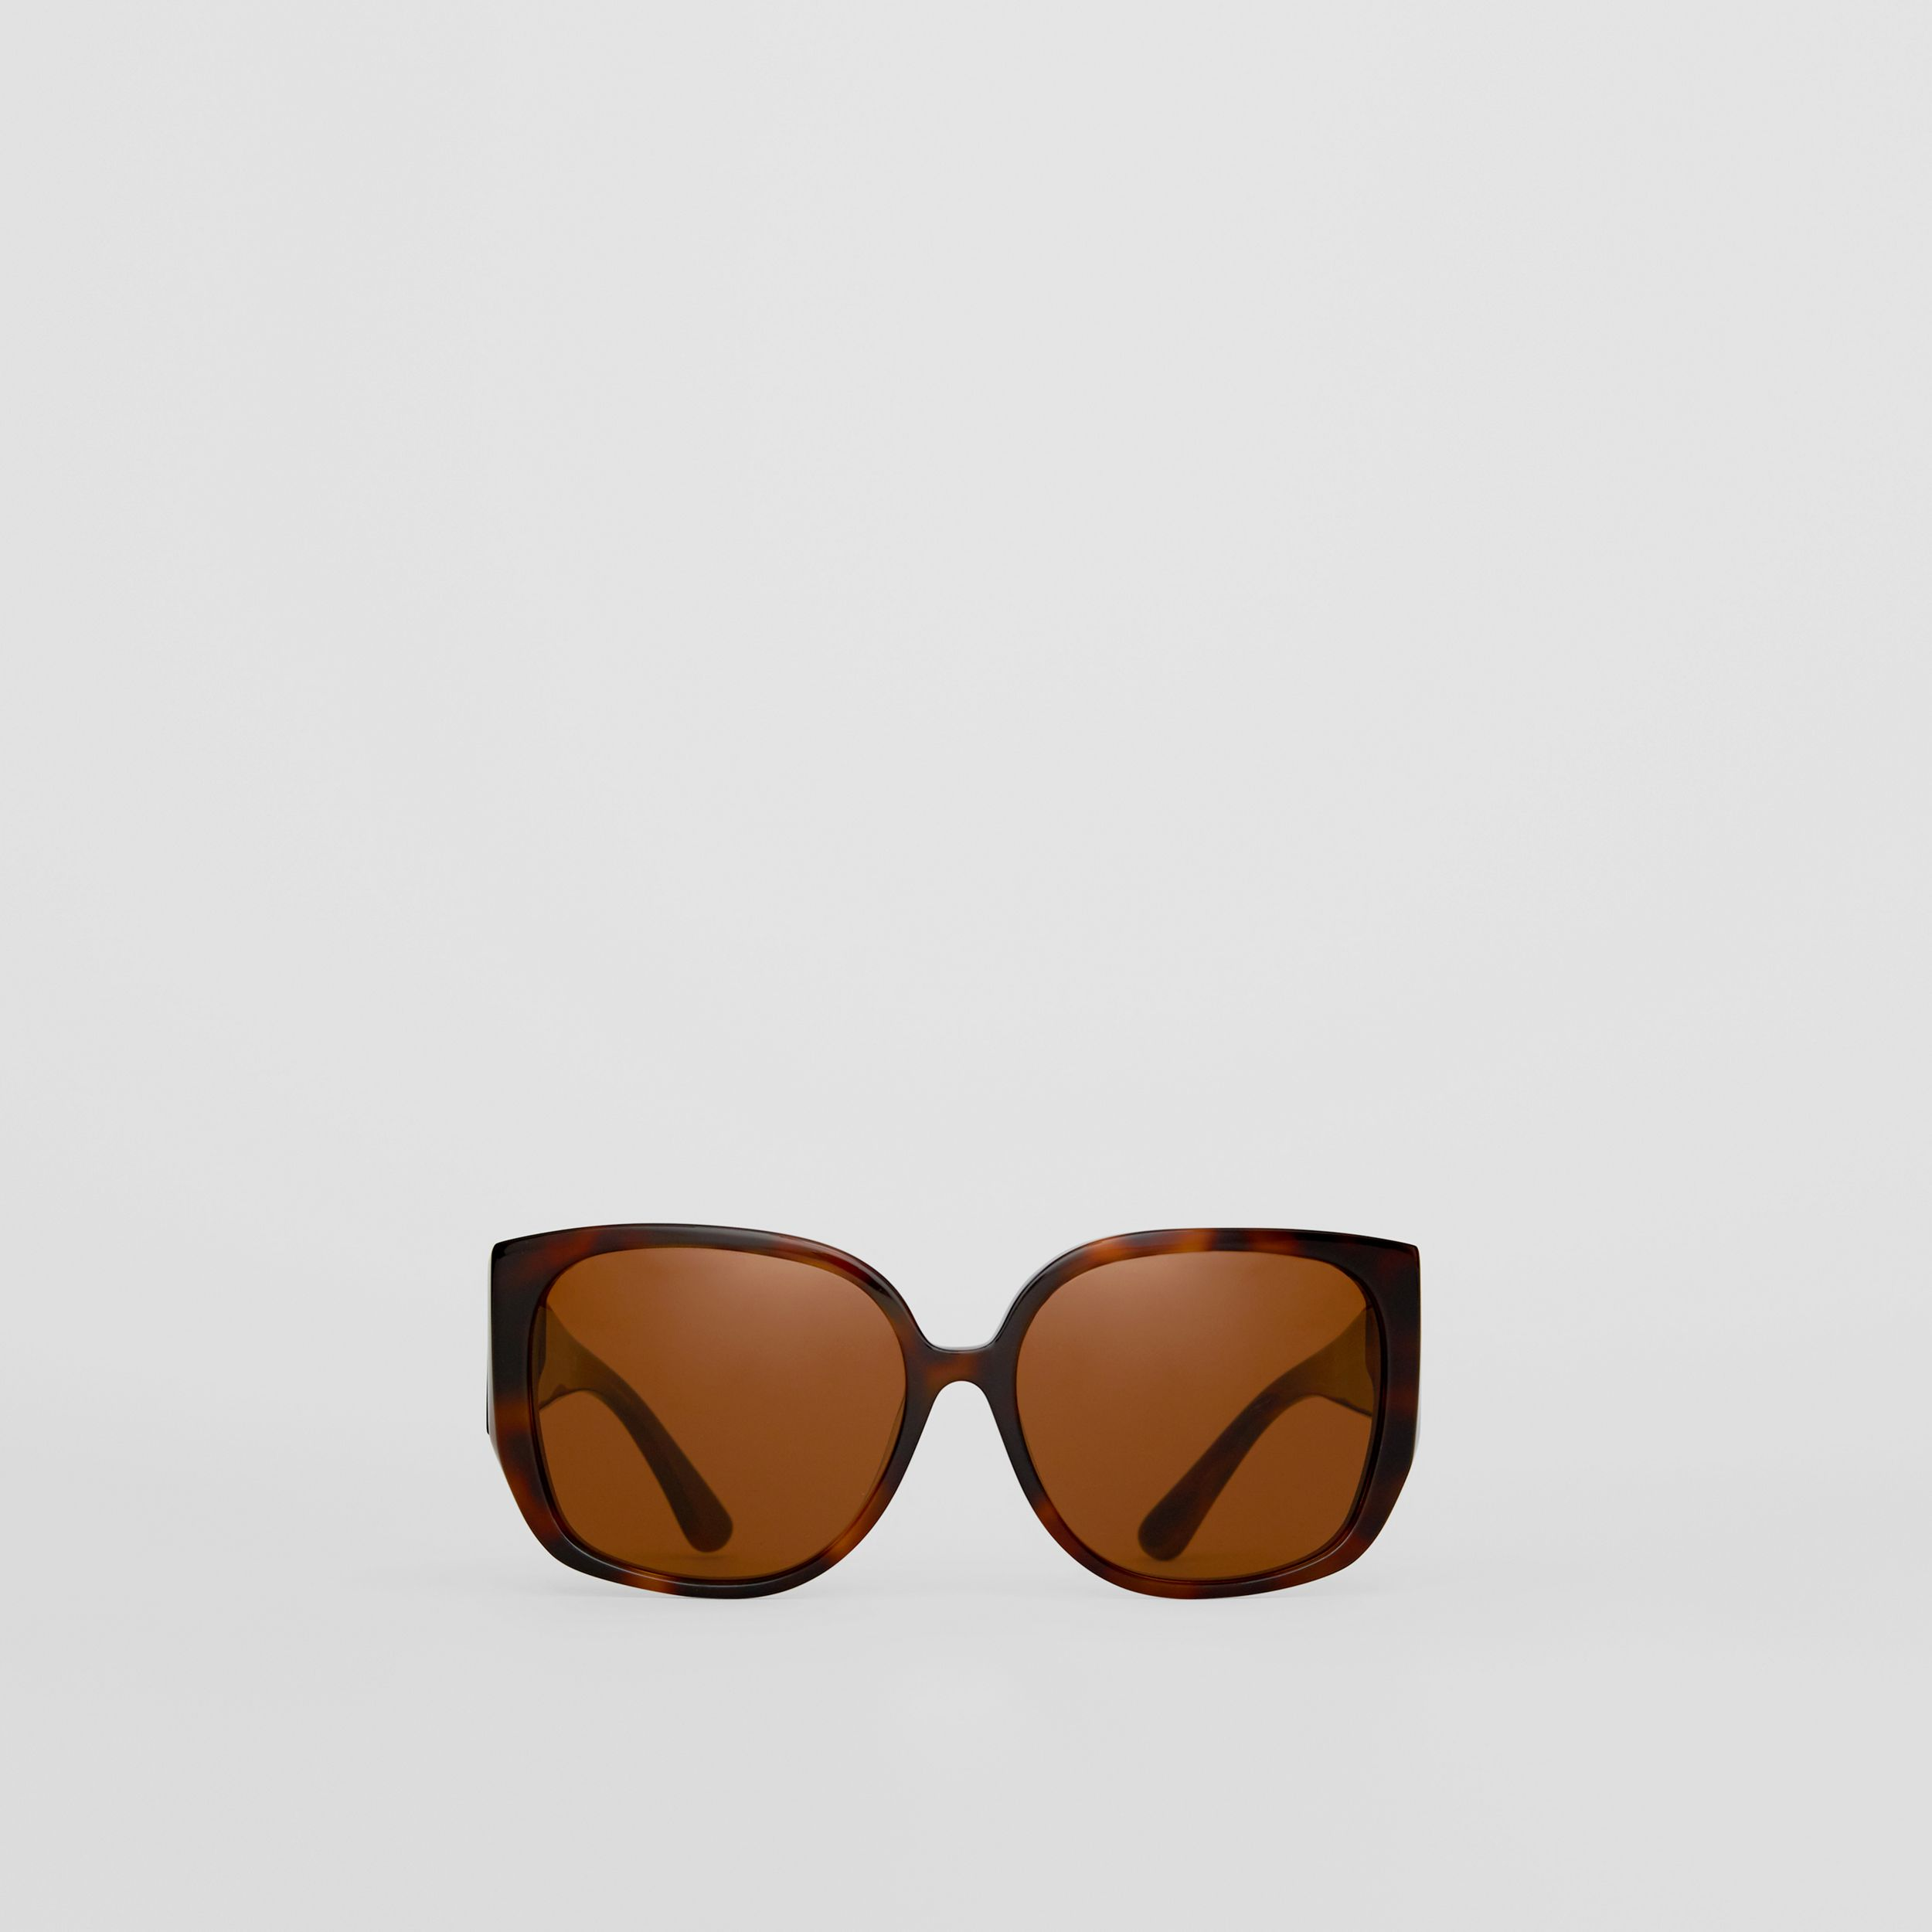 Oversized Butterfly Frame Sunglasses in Tortoiseshell - Women | Burberry - 1